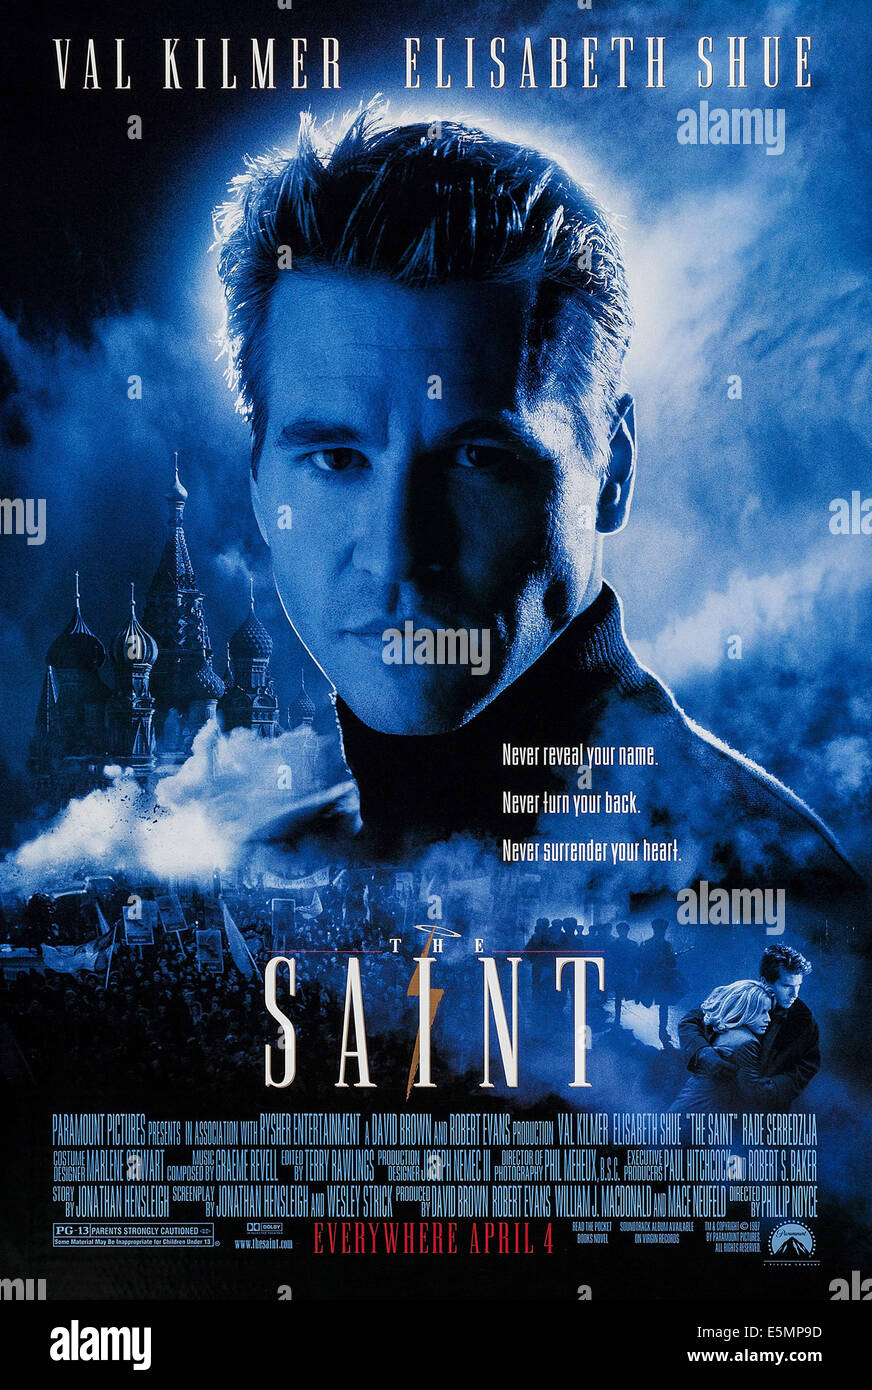 THE SAINT, US advance poster art, Val Kilmer, 1997. ©Paramount/courtesy Everett Collection - Stock Image